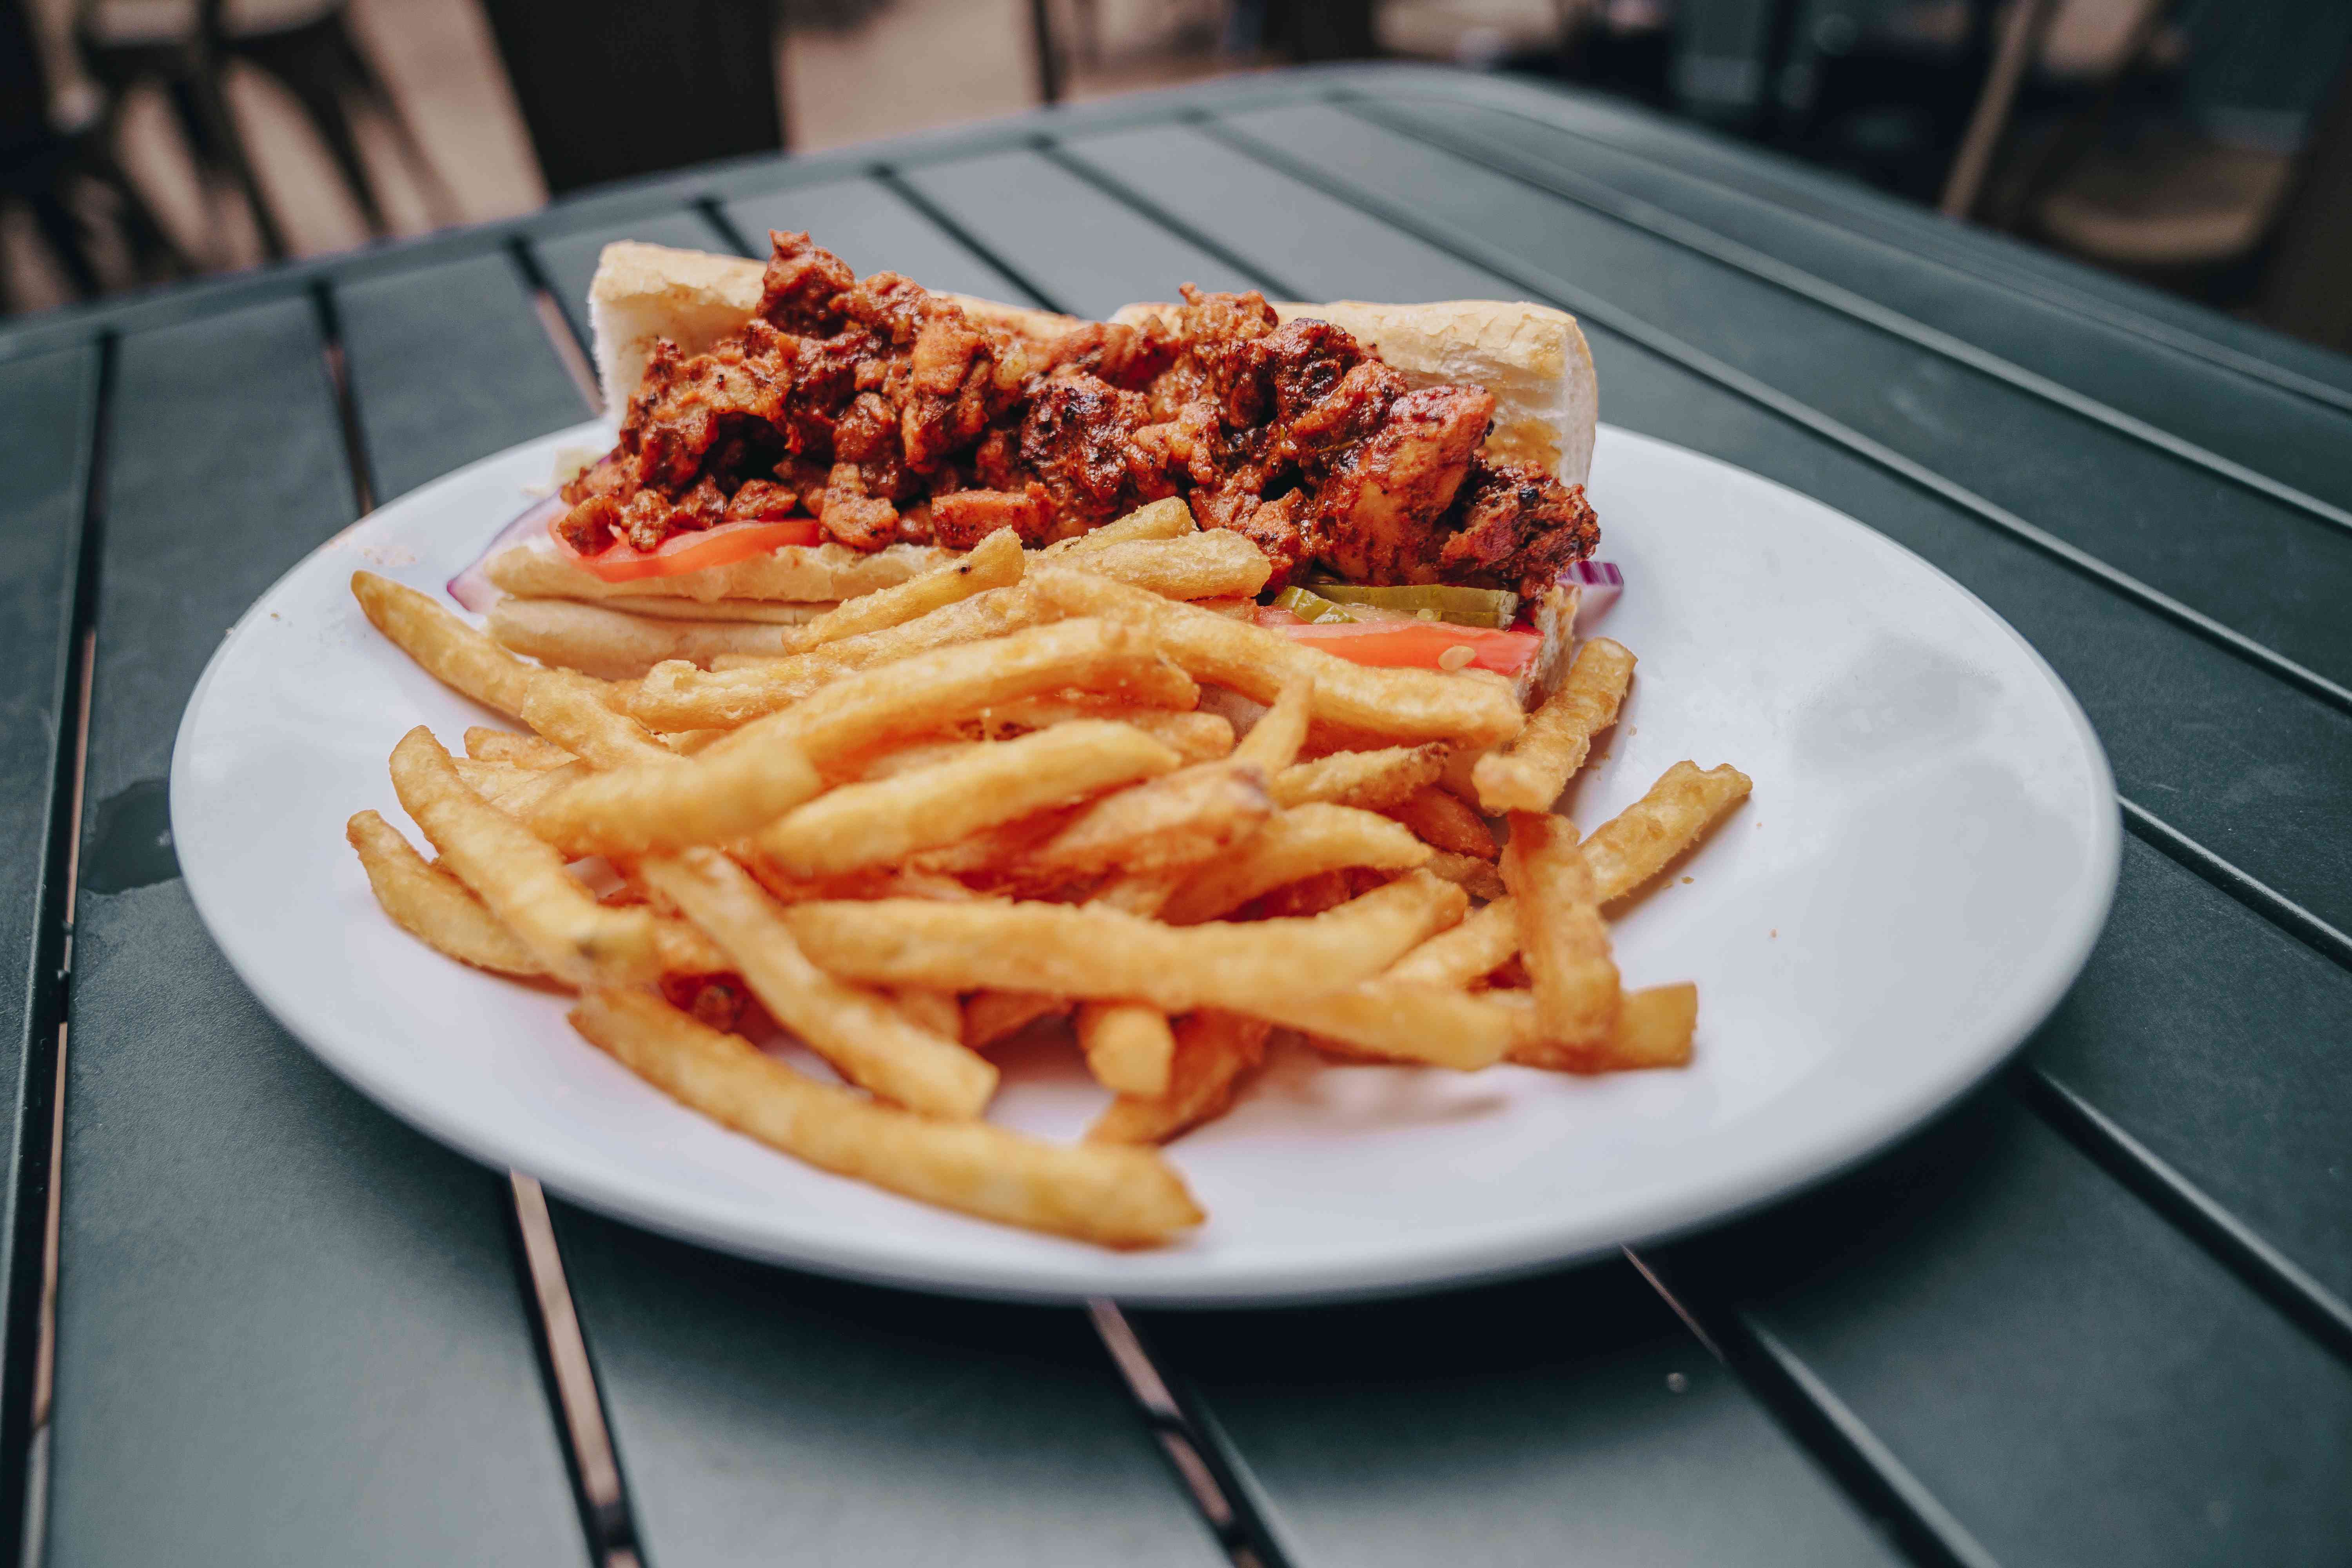 Alligator Poboy and fries